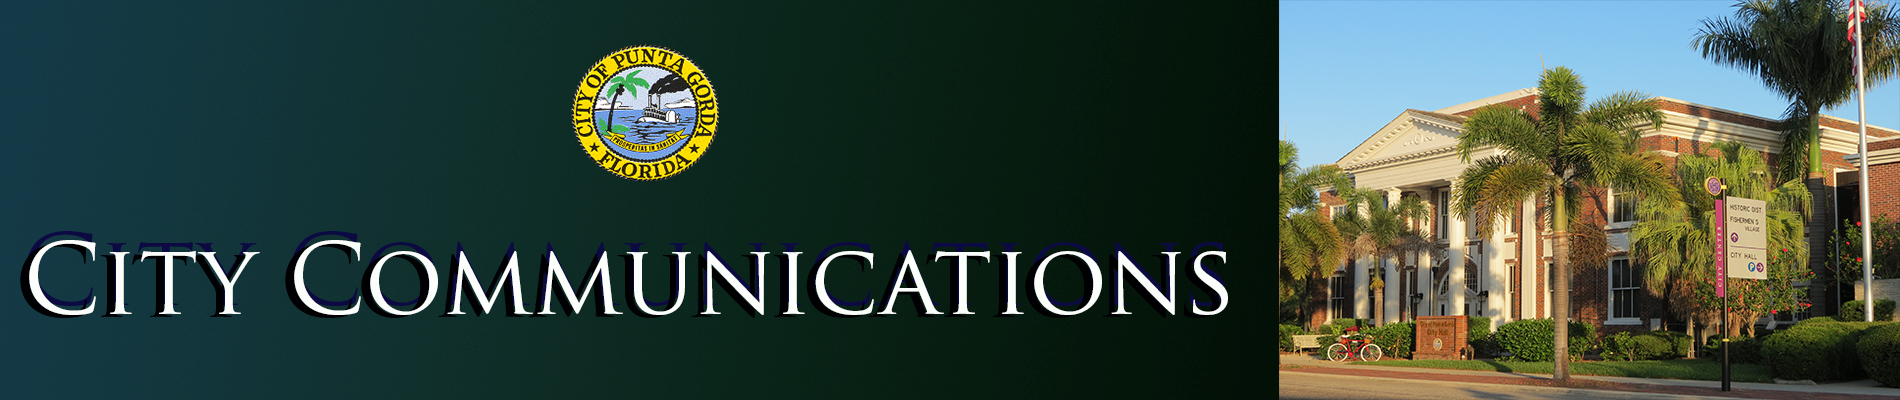 City Communications Banner Teal